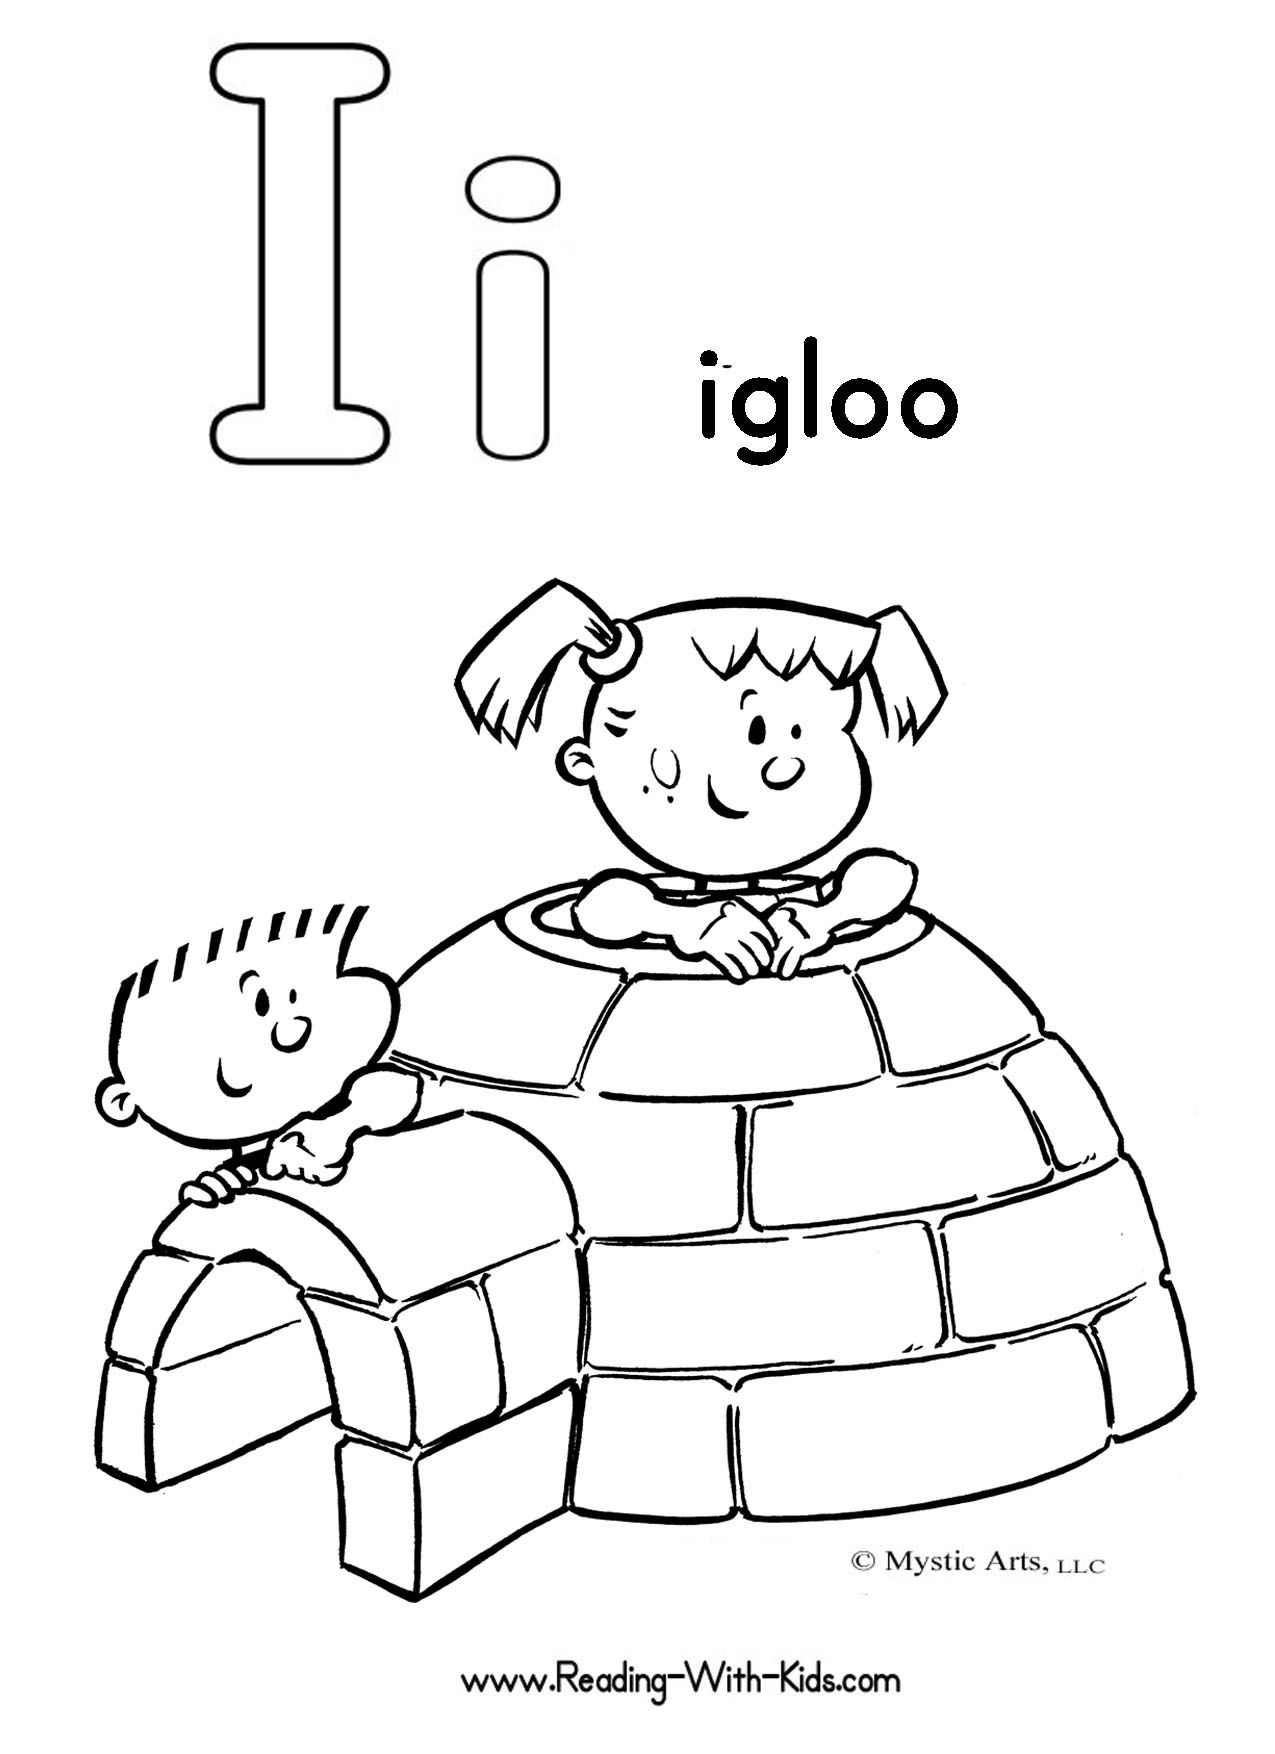 igloo coloring pic alphabet coloring pages